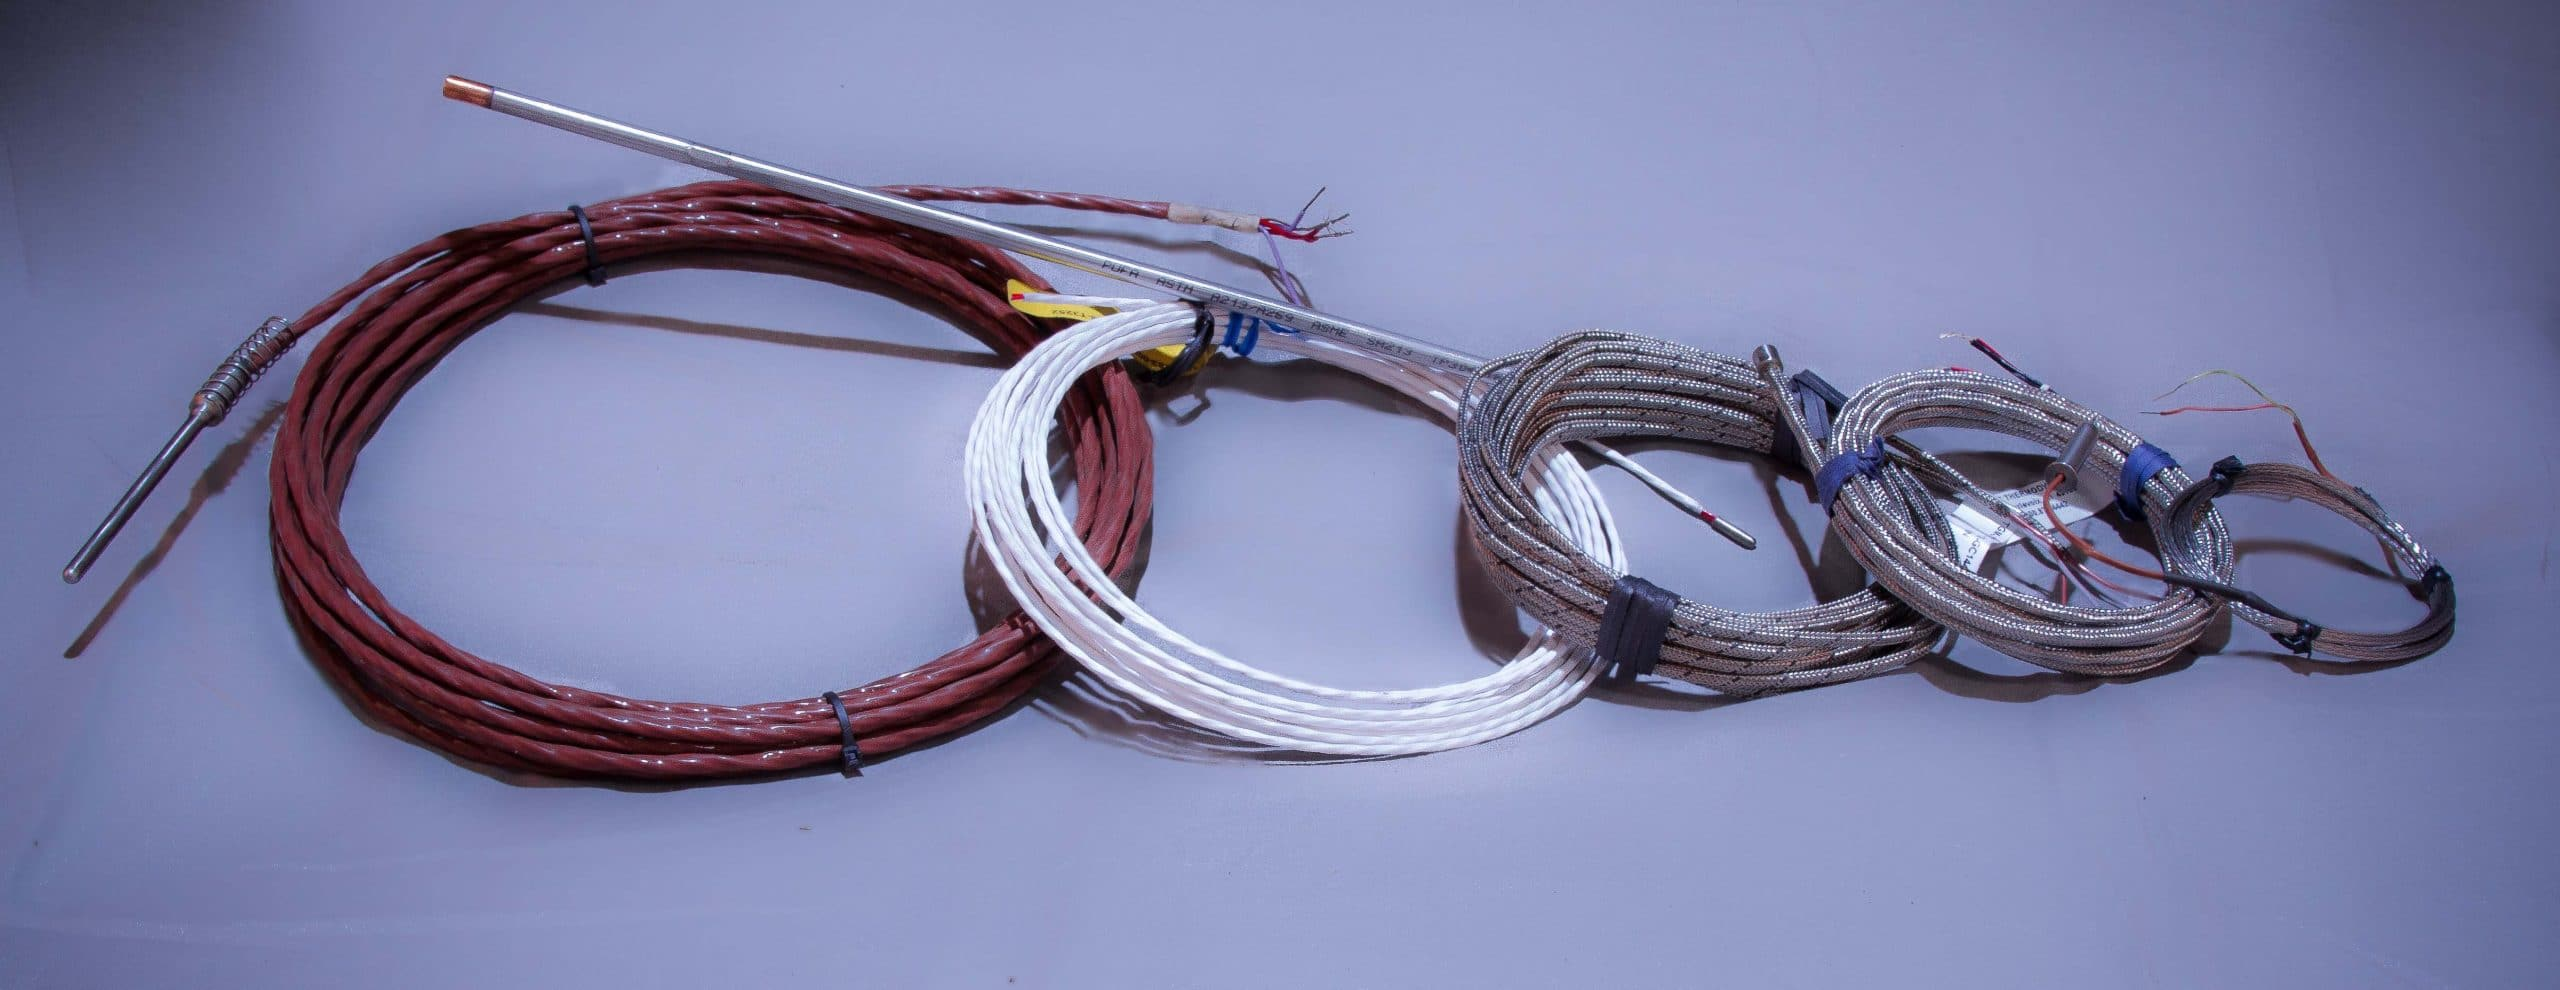 RTD/Thermocouples